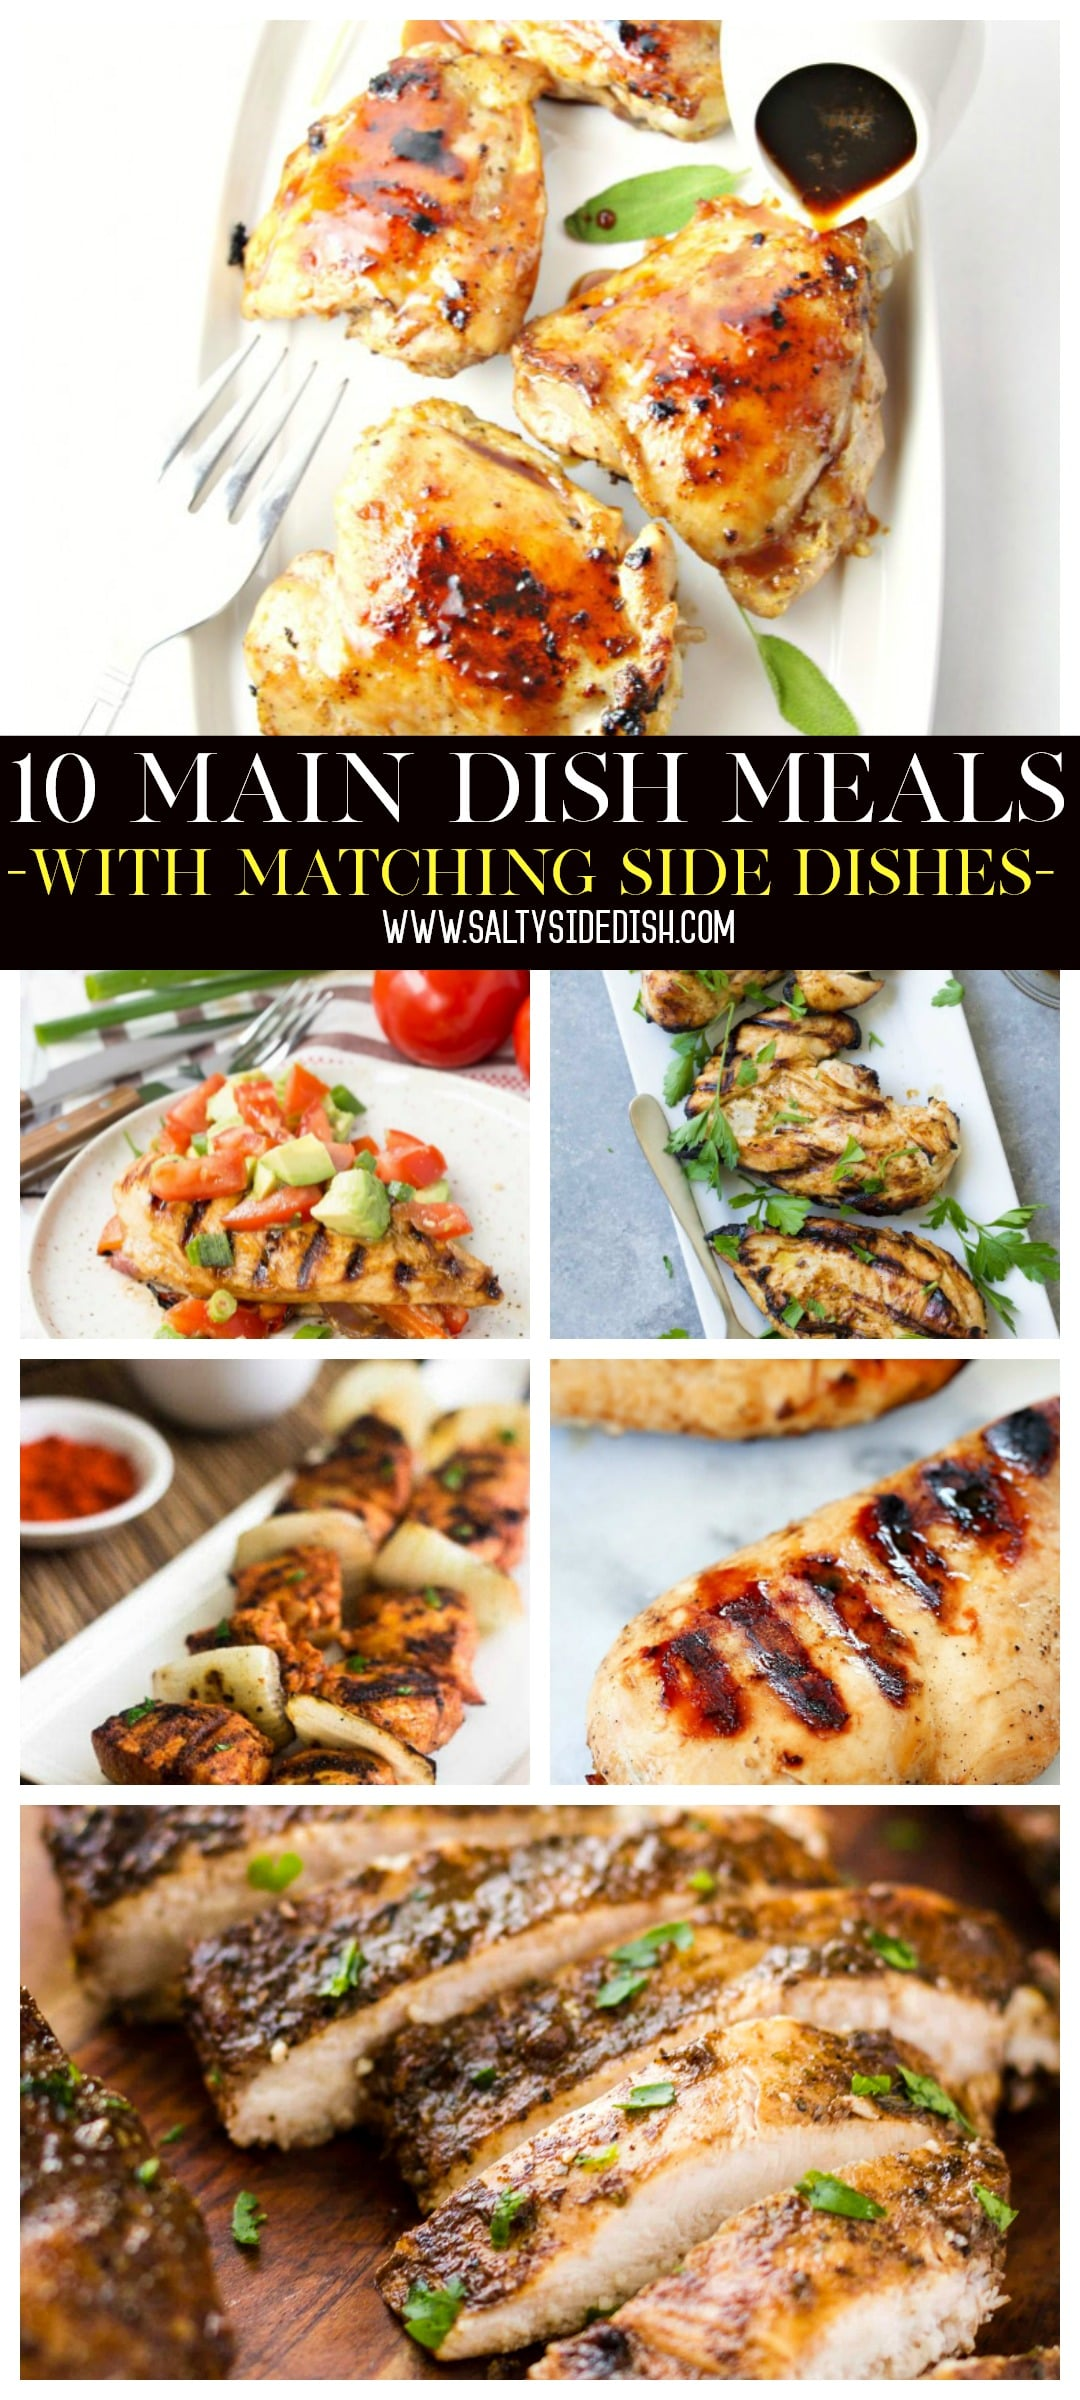 10 Main Dish Recipes for Easy Weeknight Dinner Meals plus matching side dish recipes for a complete homemade plate